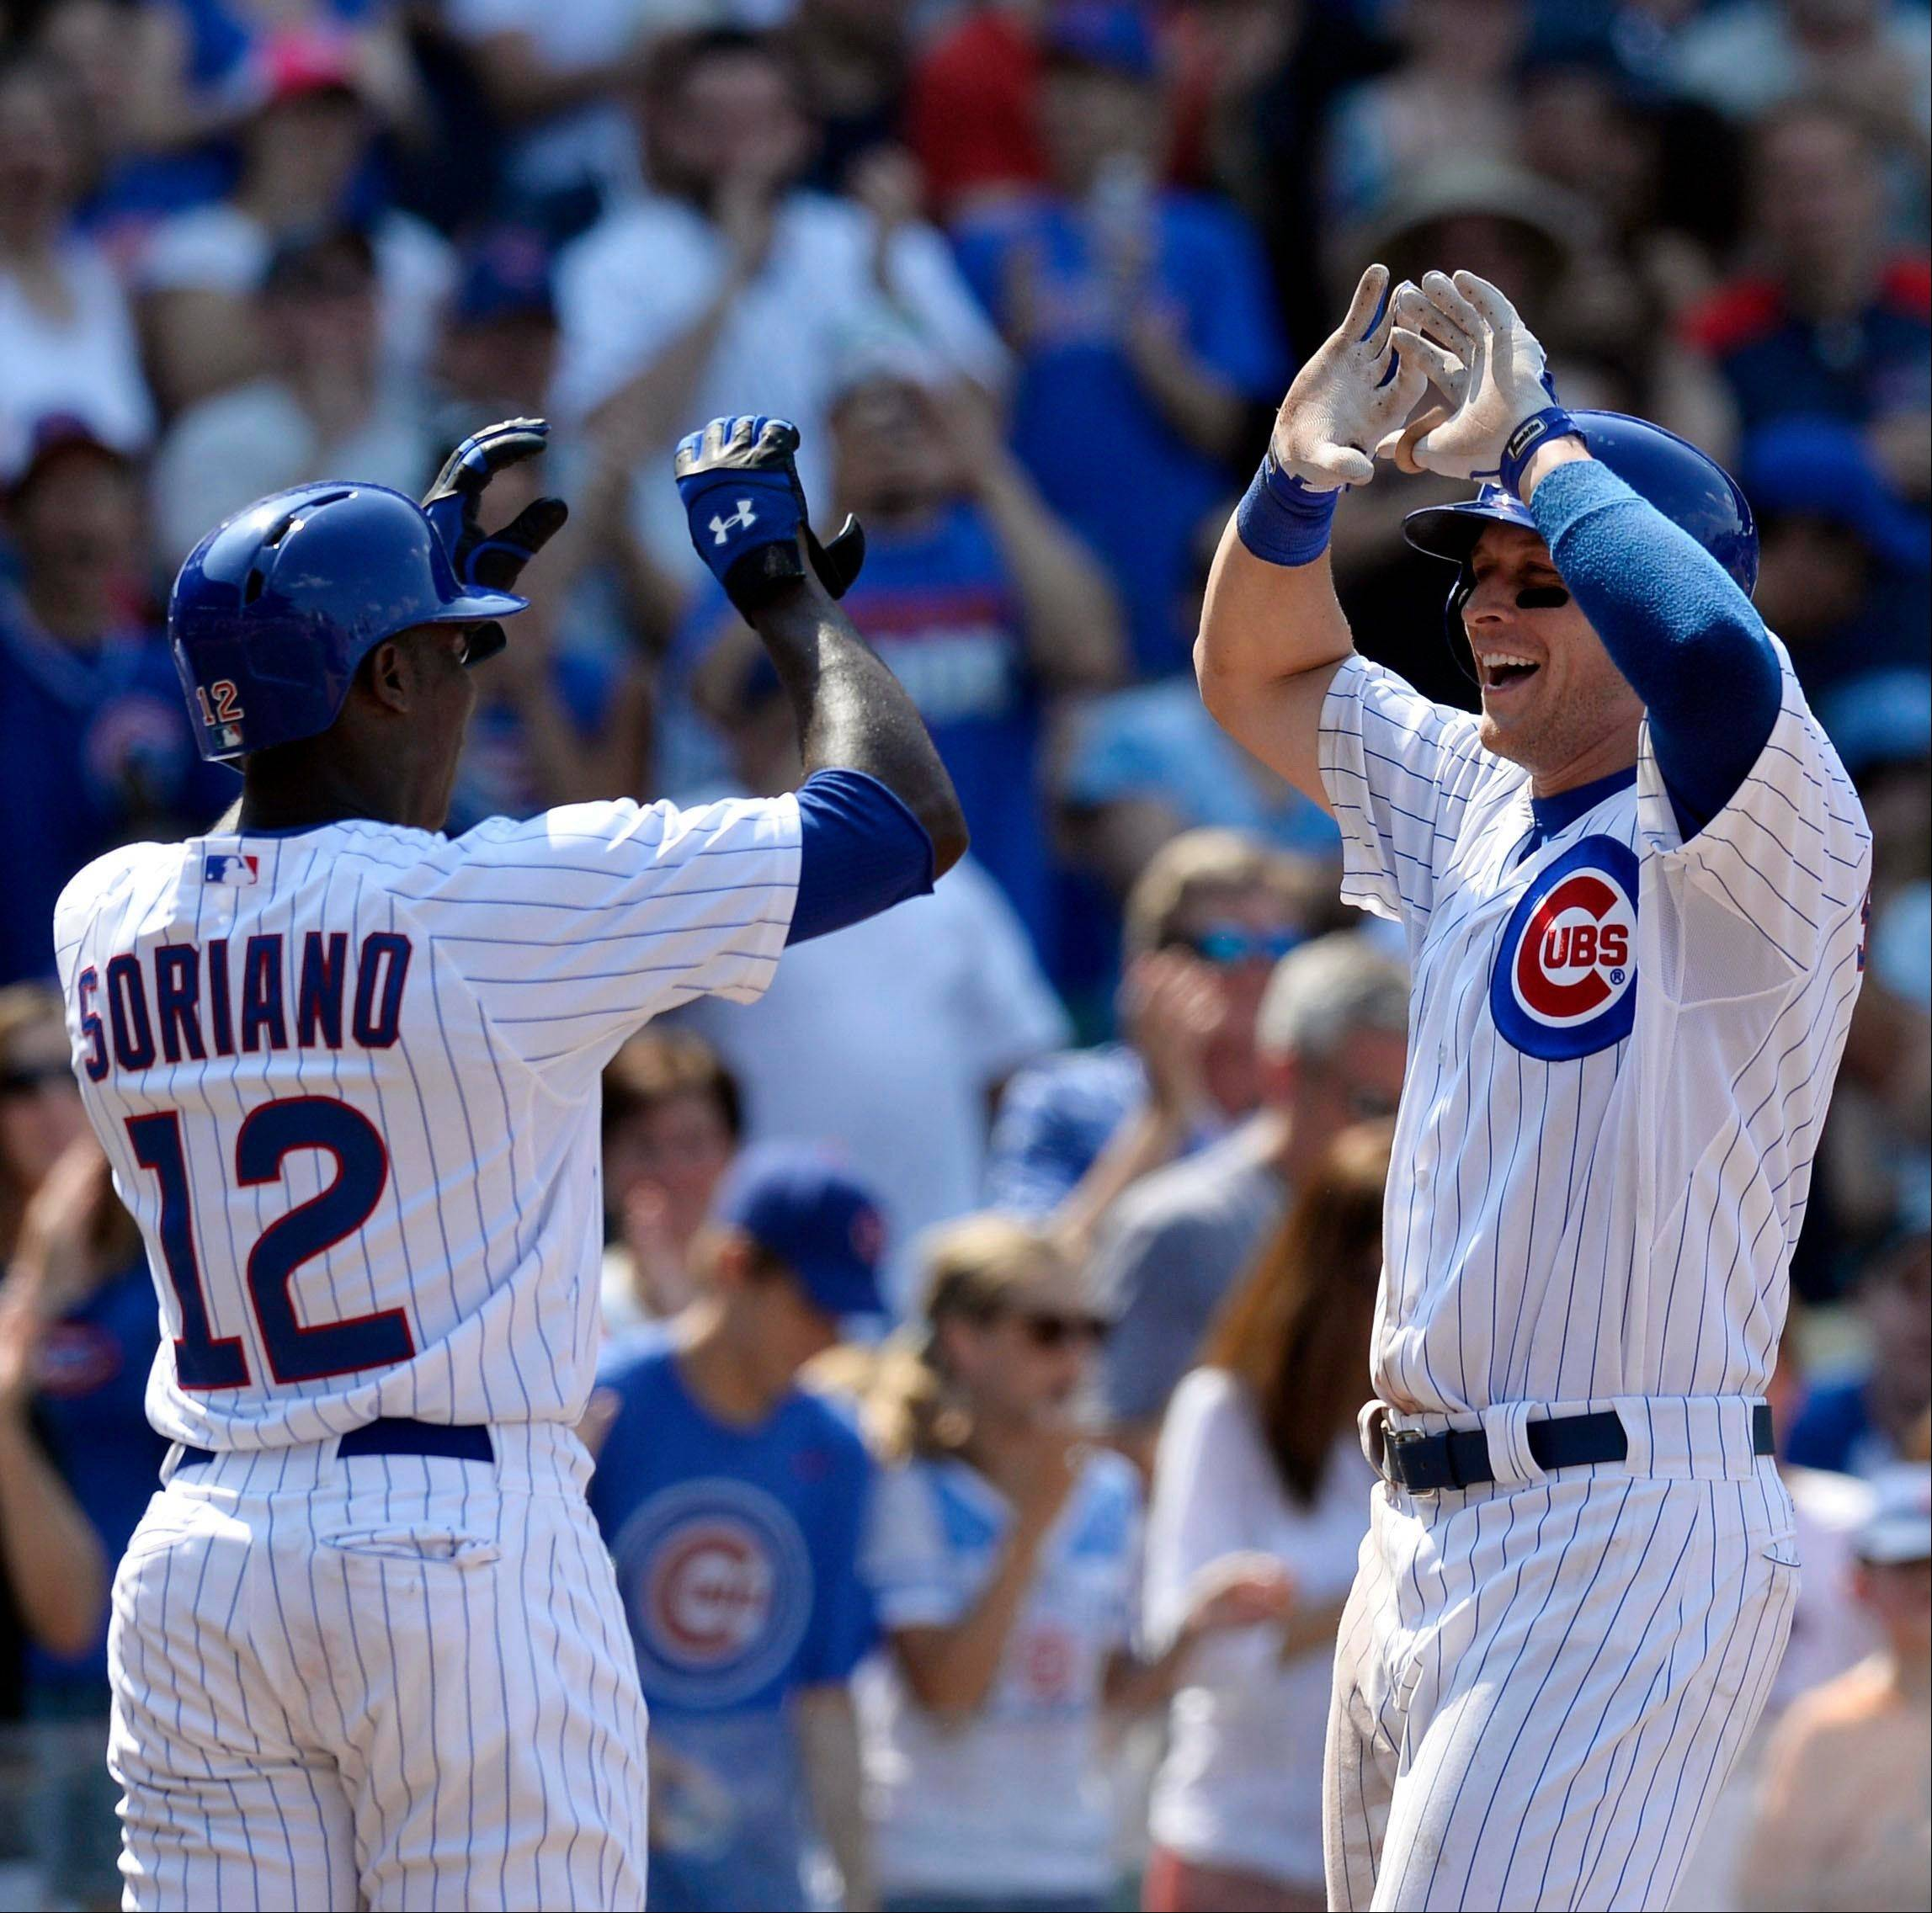 Cubs slug their way past Astros 14-6